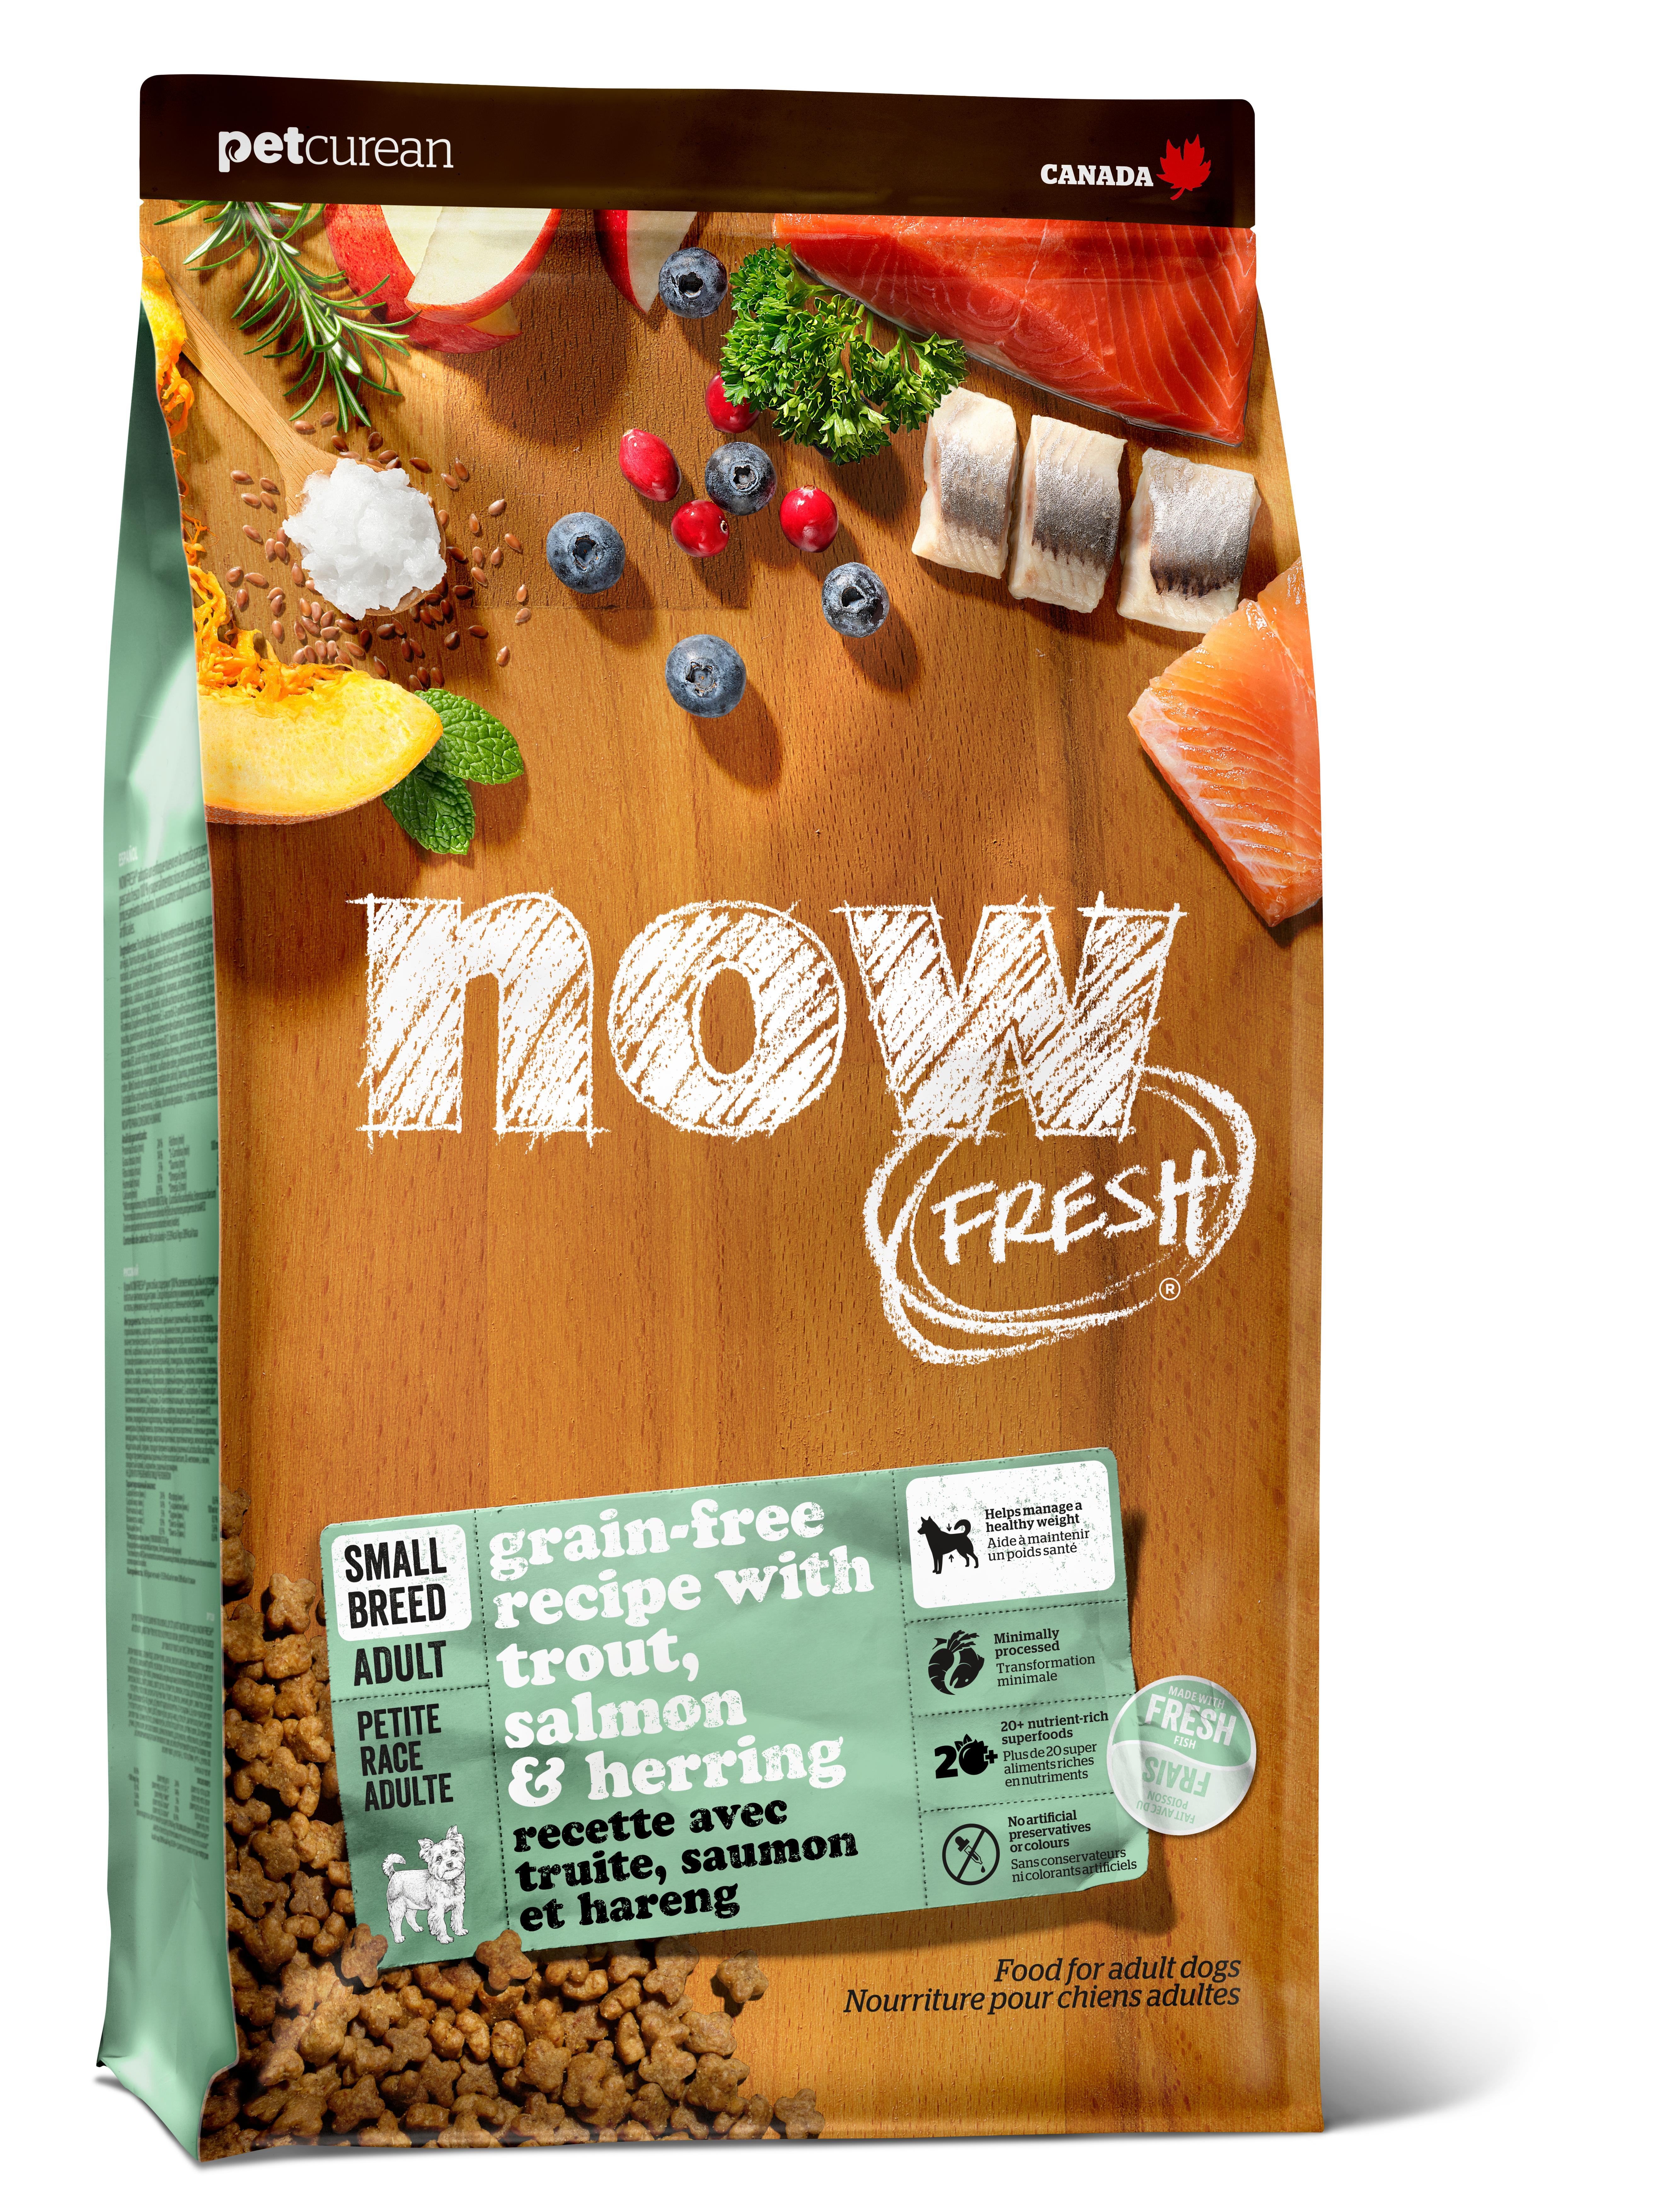 NOW FRESH Trout, Salmon & Herring Small Breed Grain-Free Dry Dog Food Image